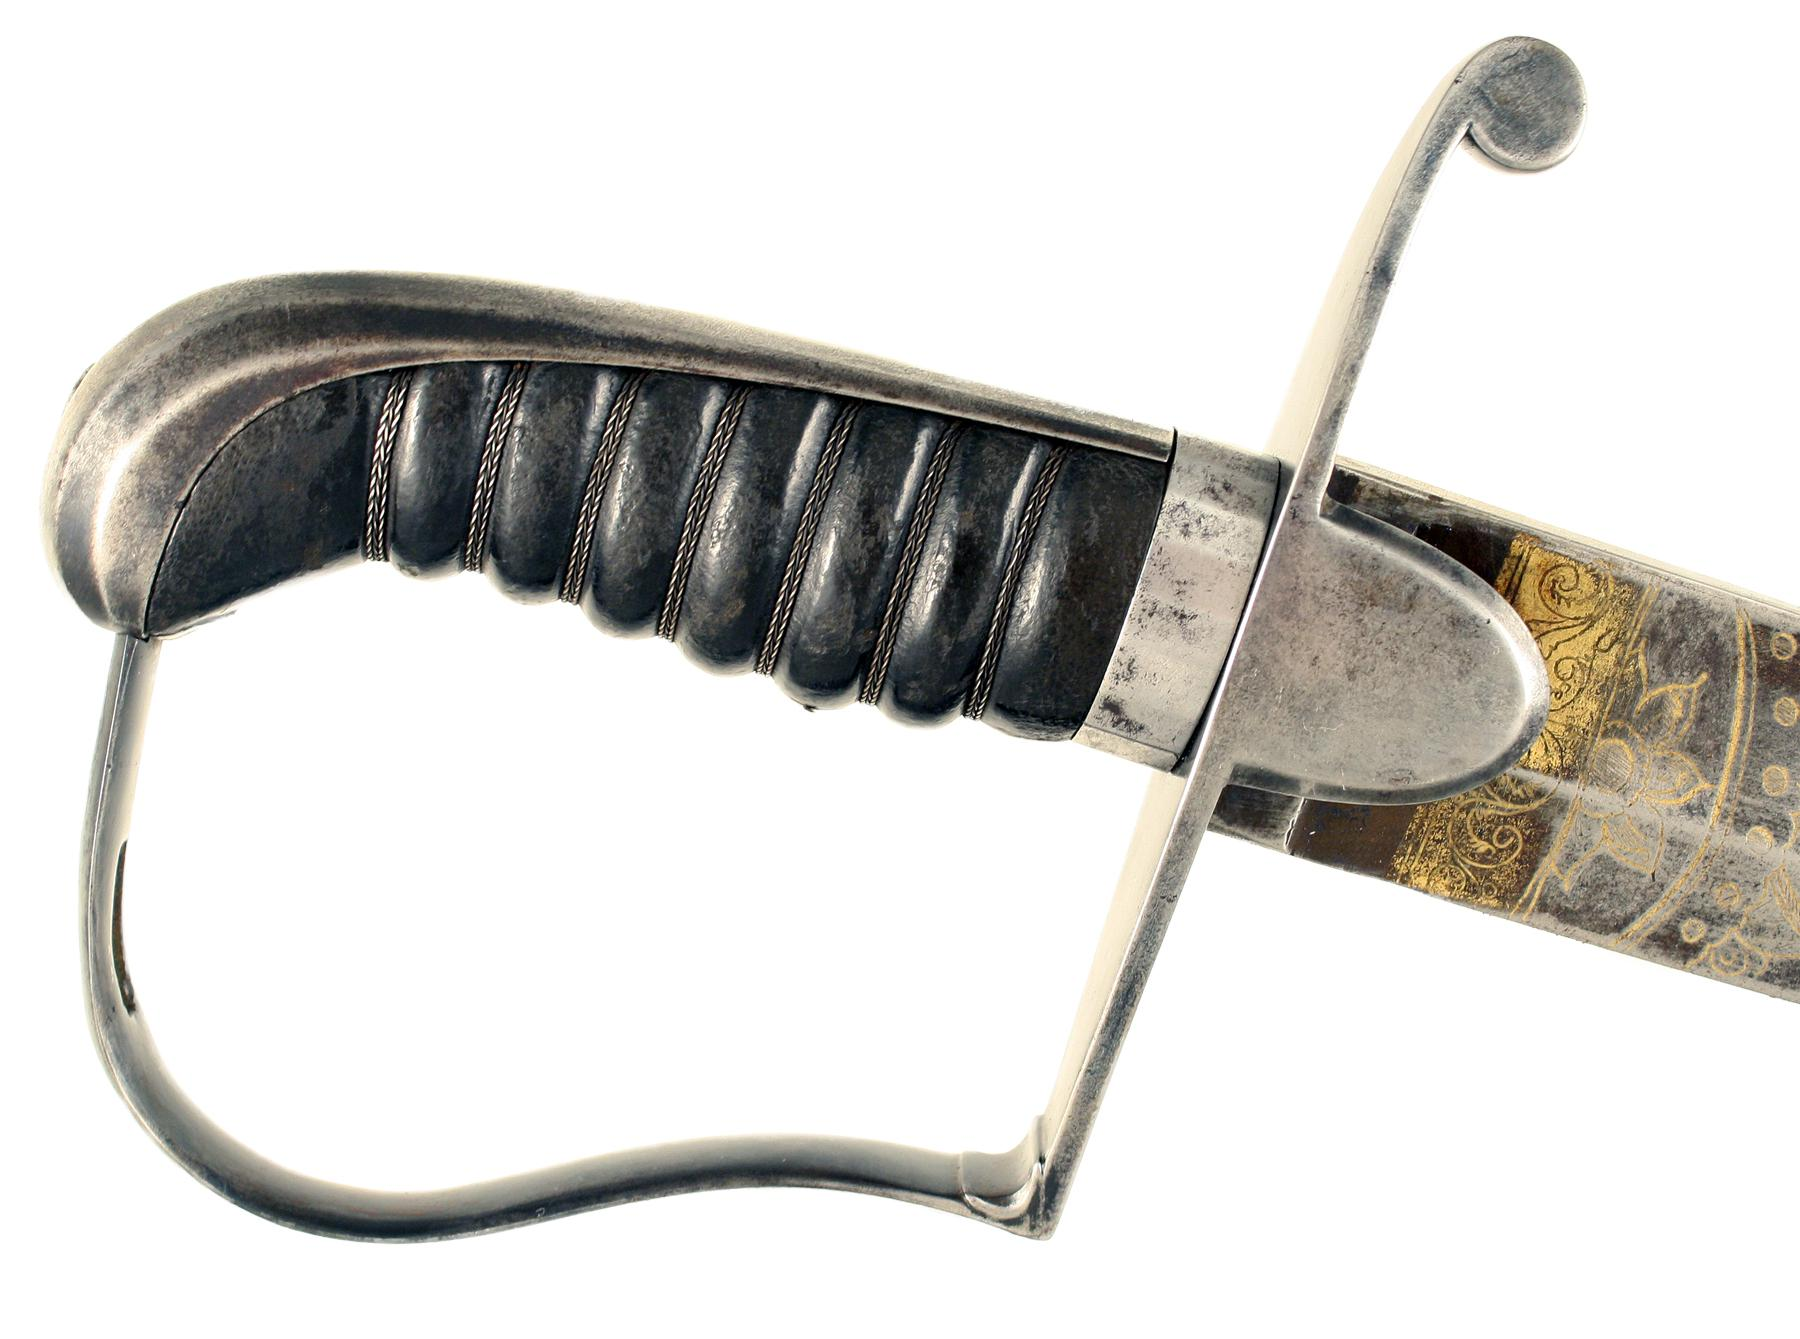 A 1796 Officers Sword